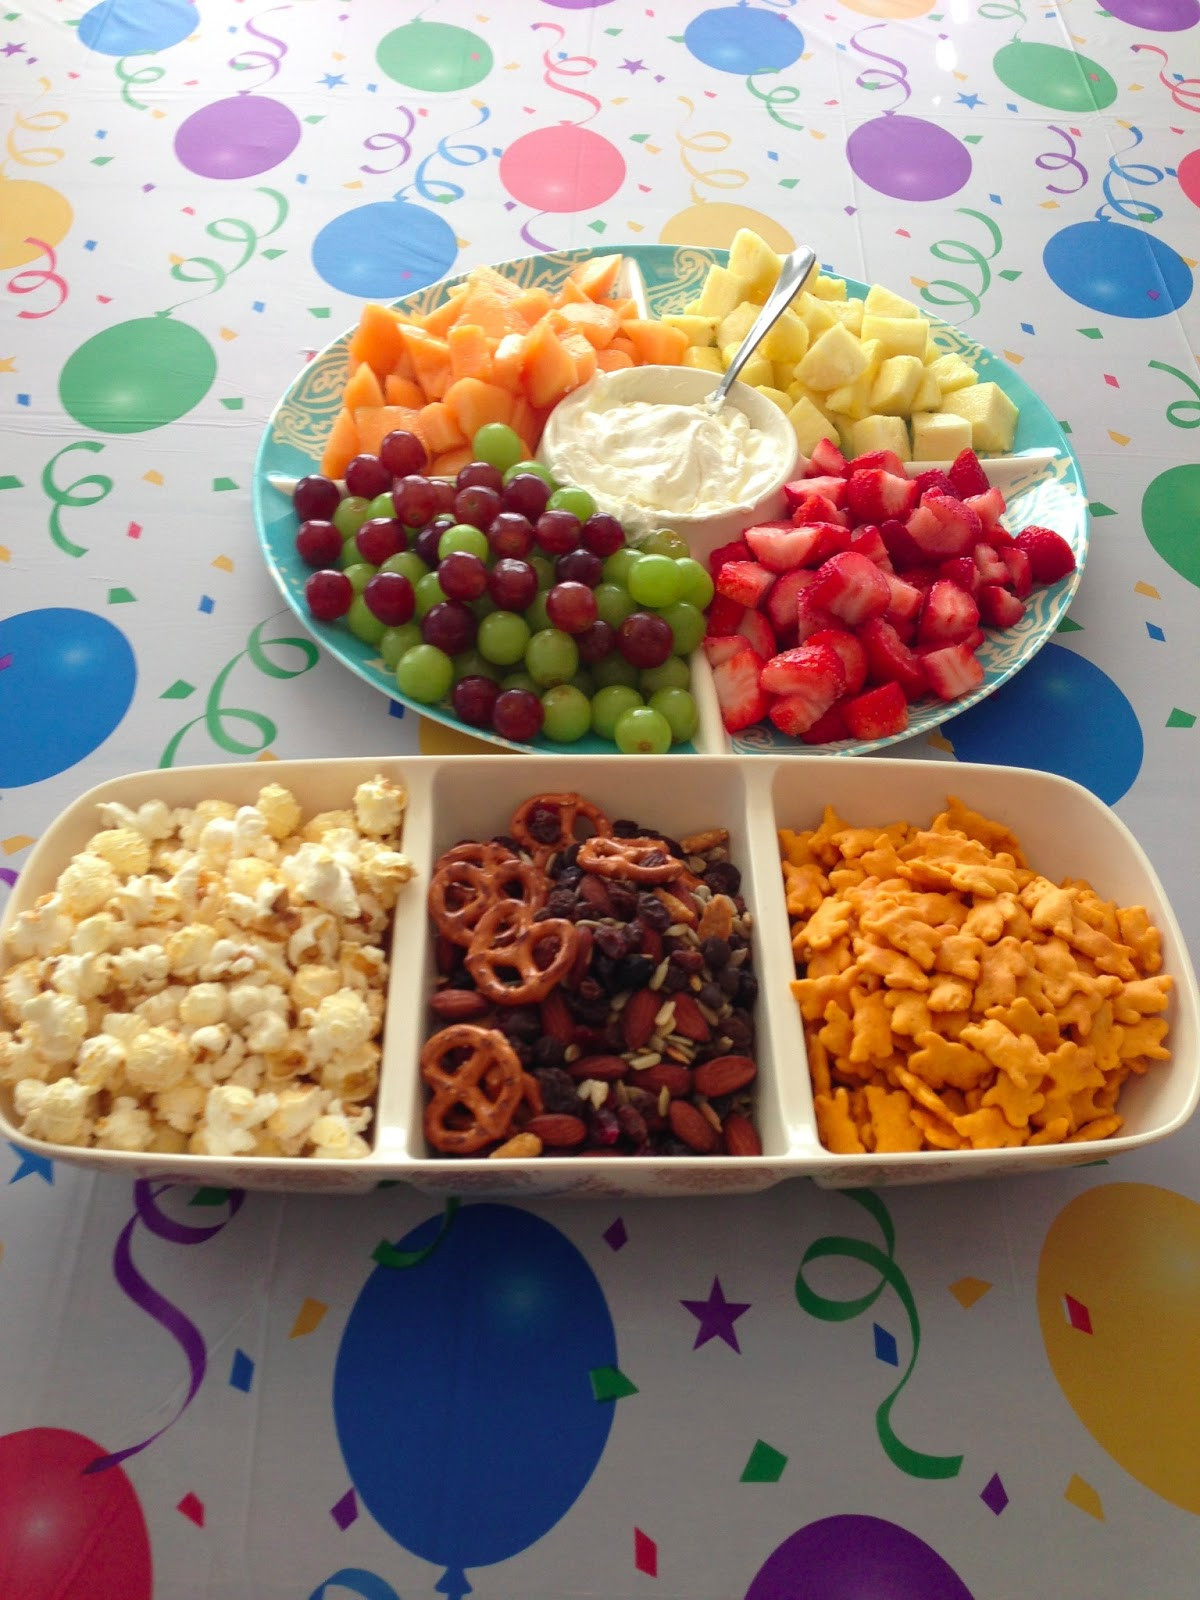 Healthy Snacks For A Party  Fit n Busy Mama Healthy Kids Birthday Party